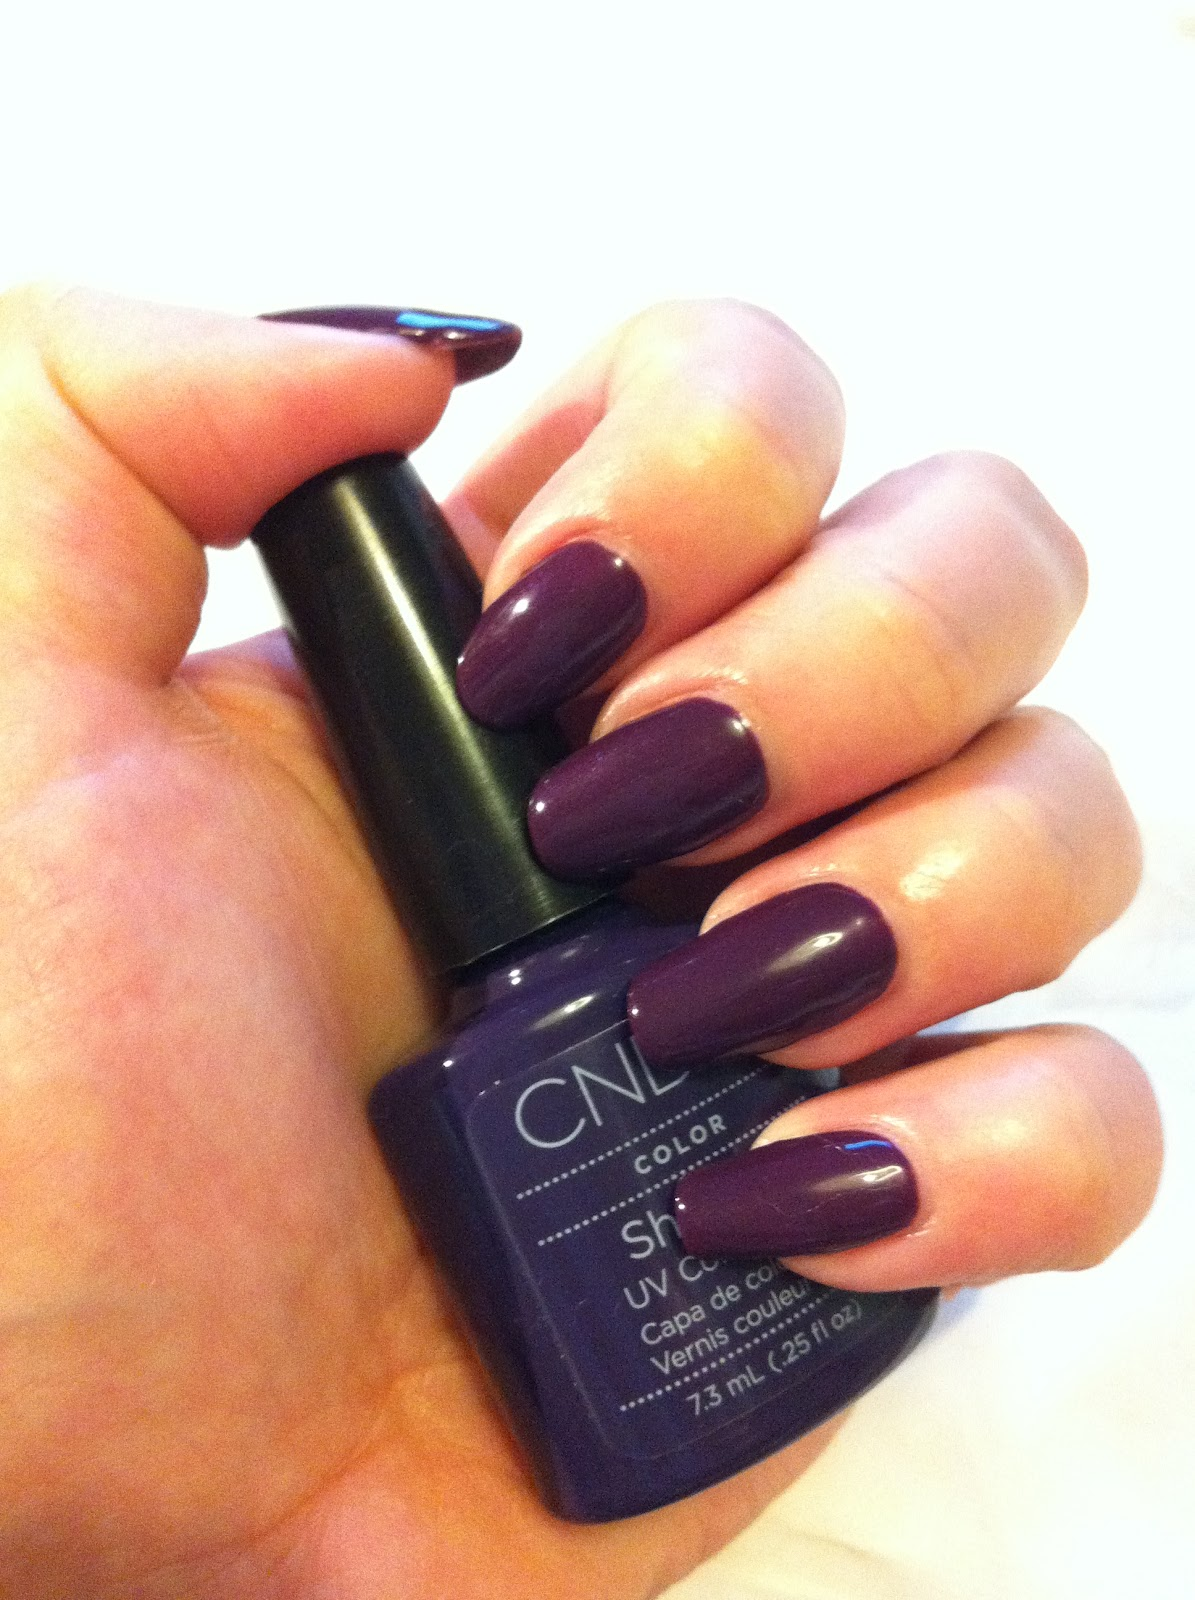 Brush up and Polish up!: CND Shellac Swatches